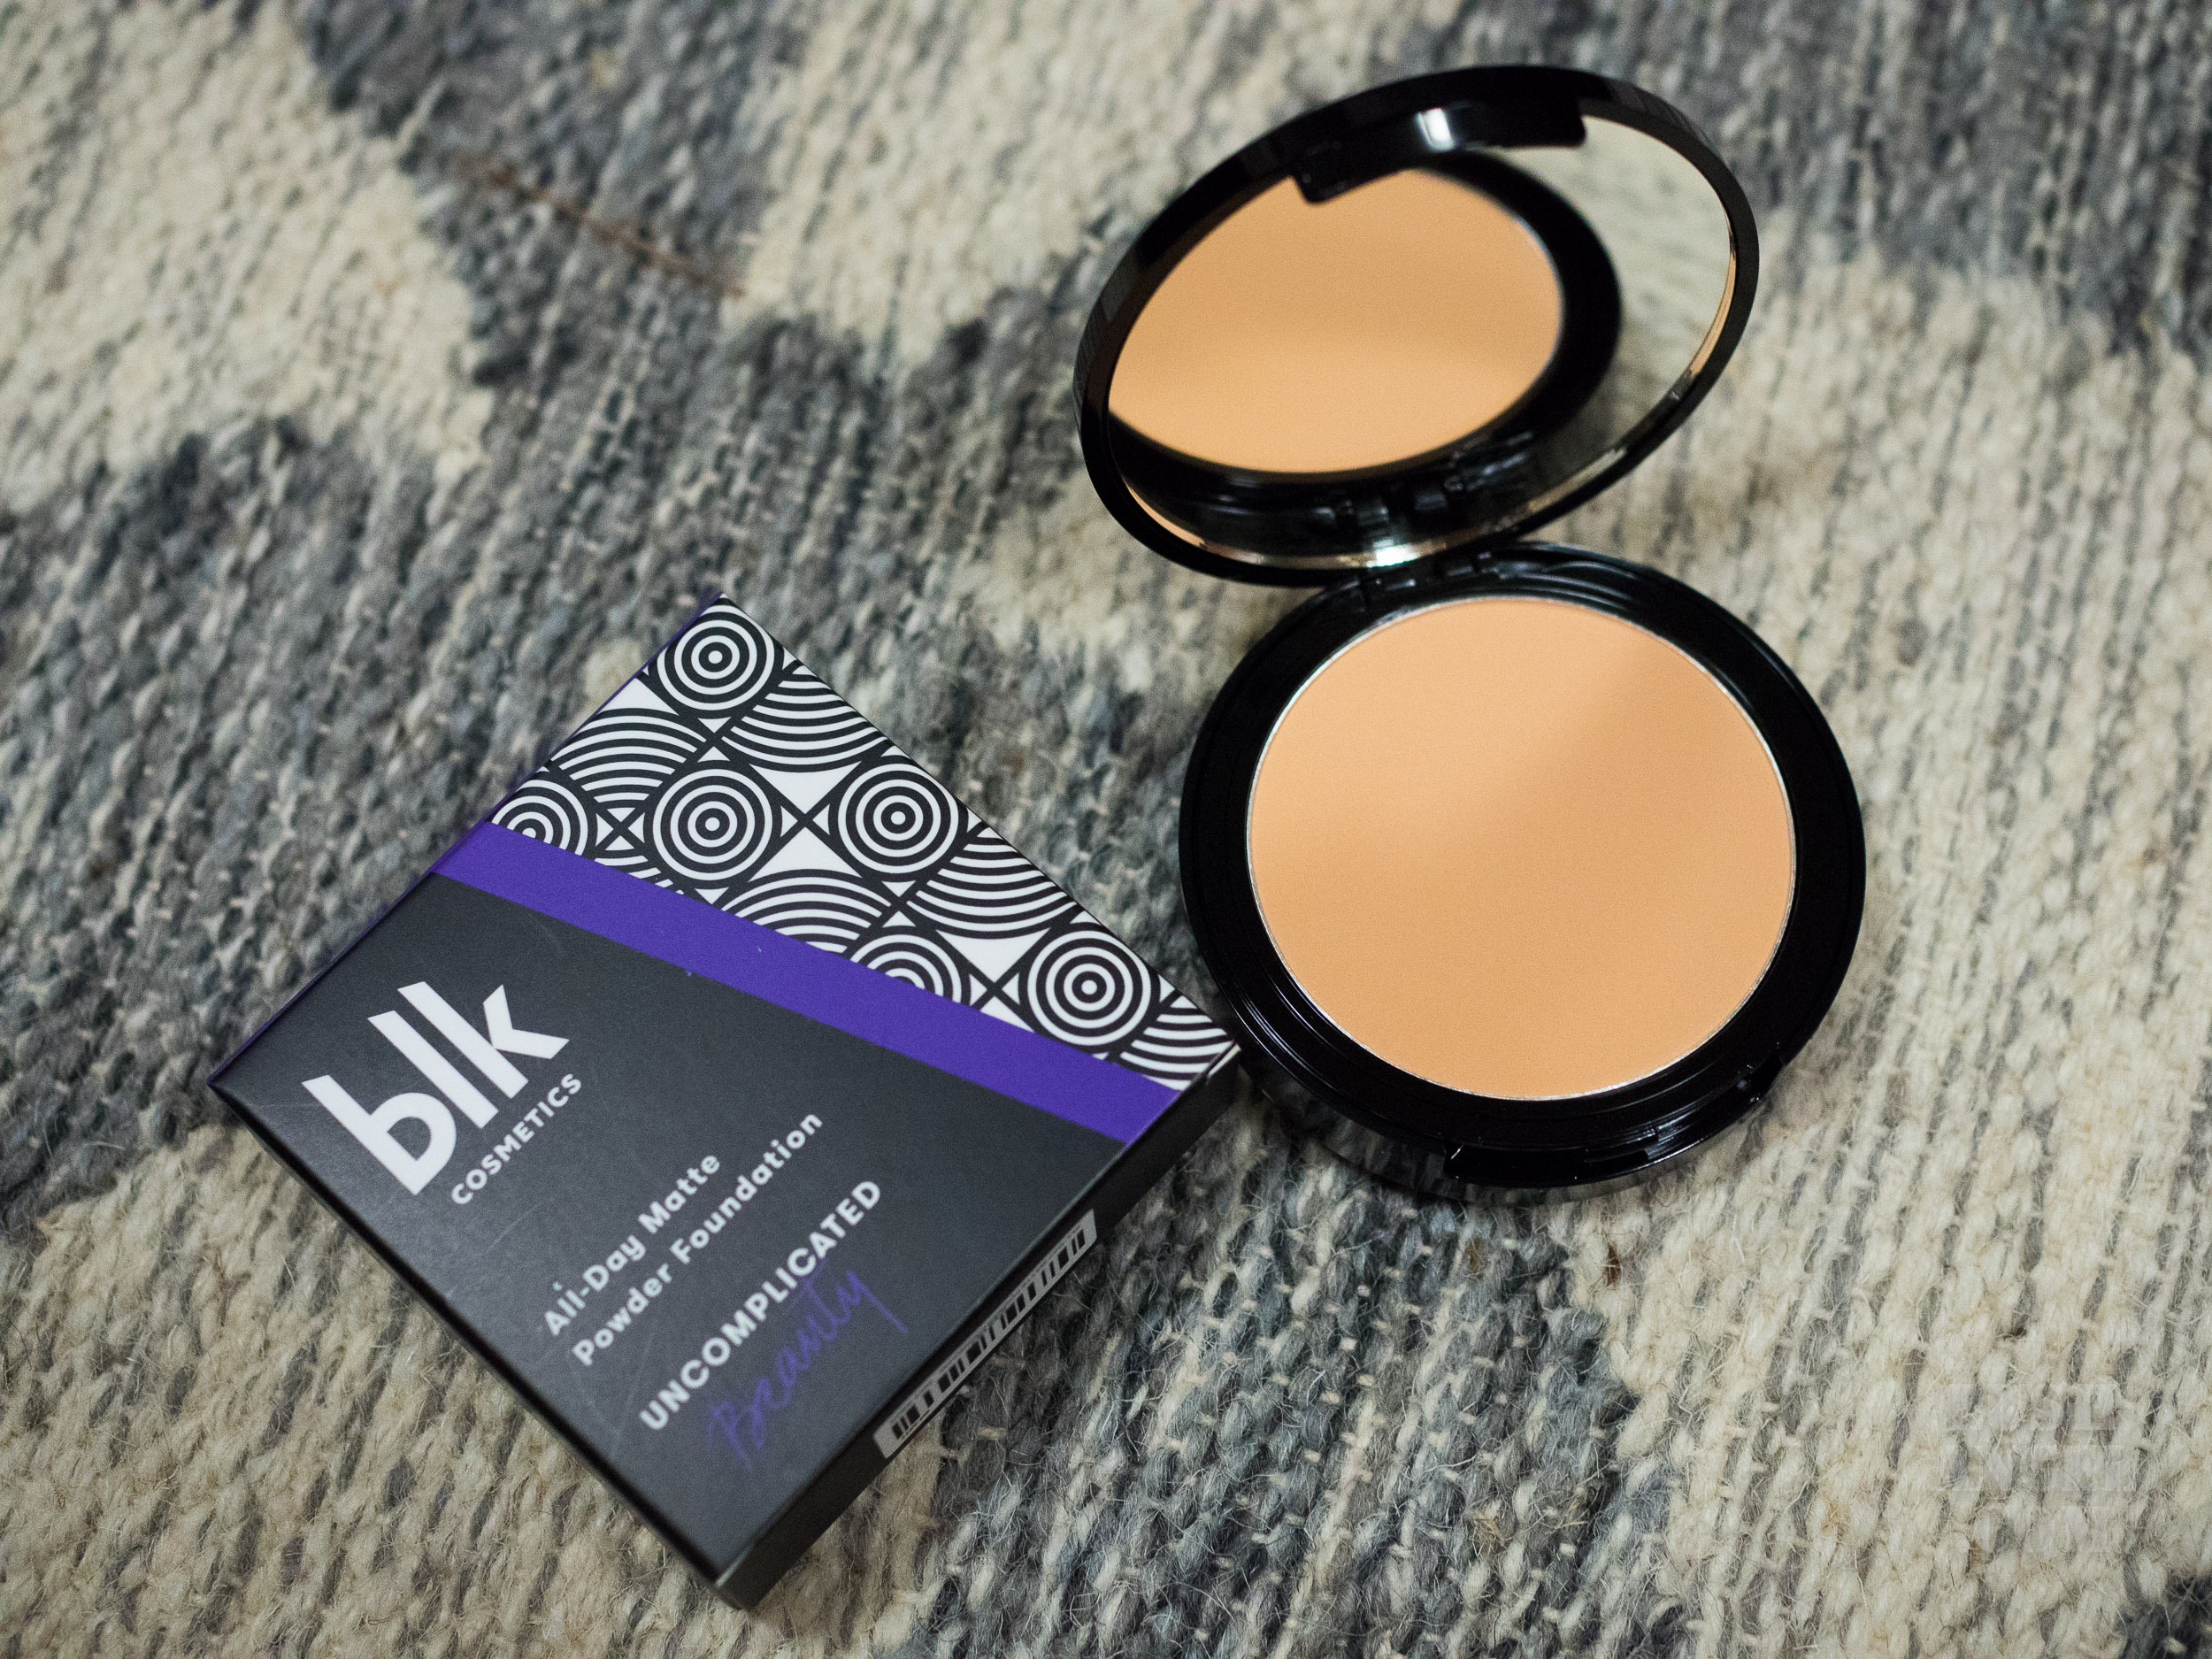 blk-cosmetics-powder-foundation